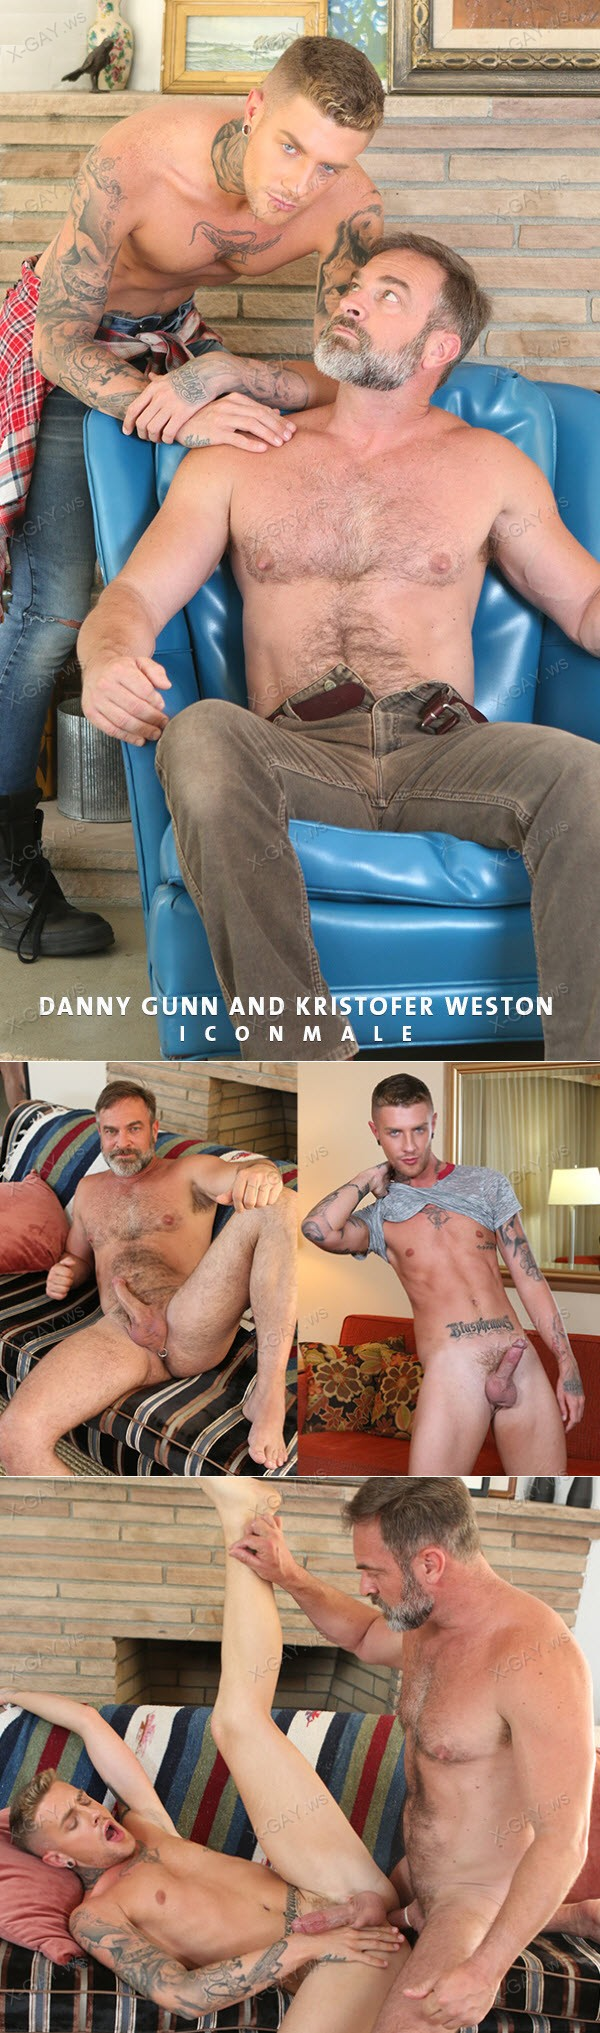 IconMale: In My Stepfather's Arms (Danny Gunn, Kristofer Weston)